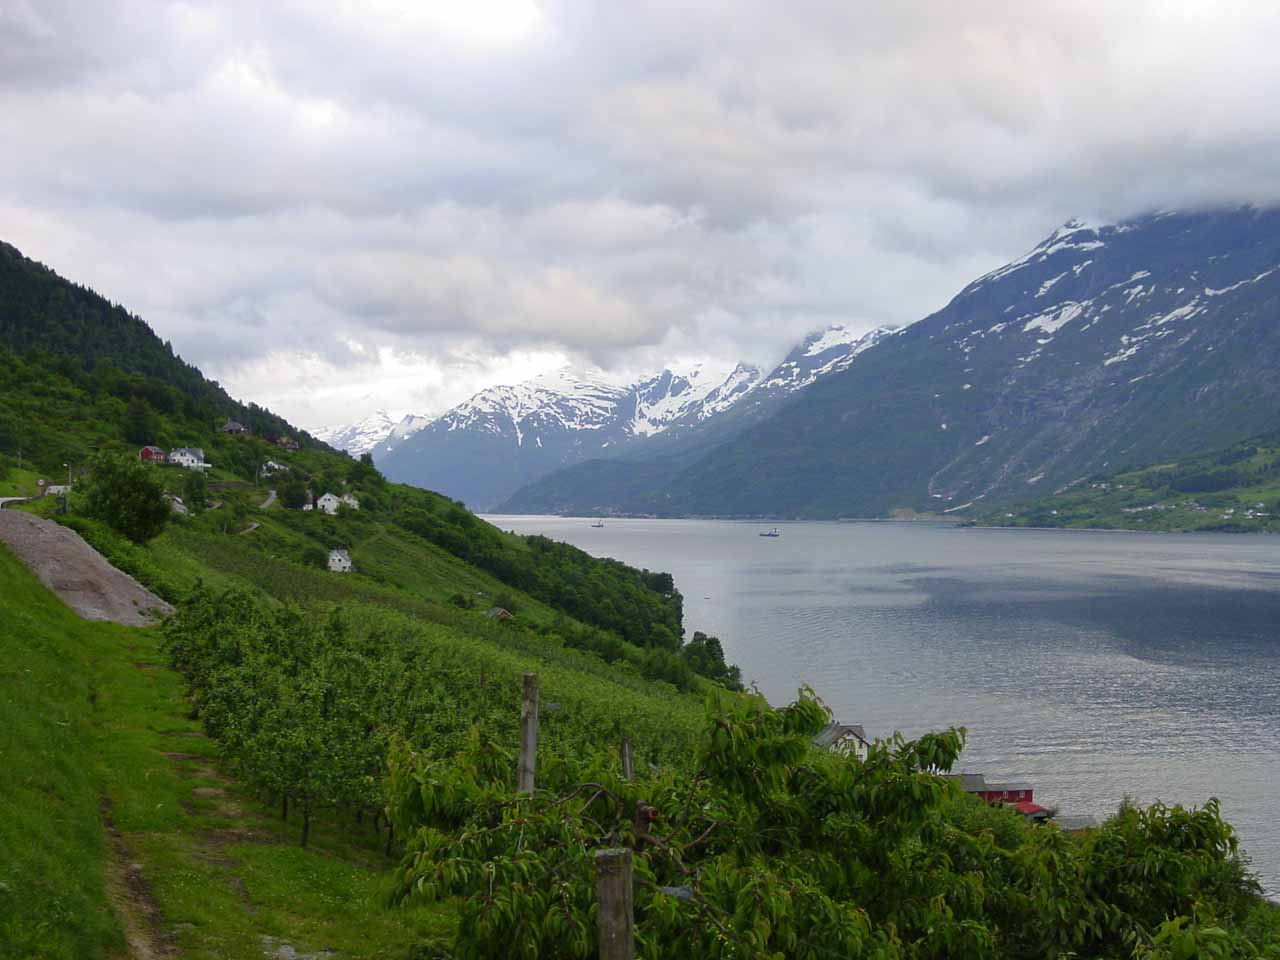 We would continue driving further north along Sørfjorden, which was an attractive fjord flanked by tall mountains with waterfalls